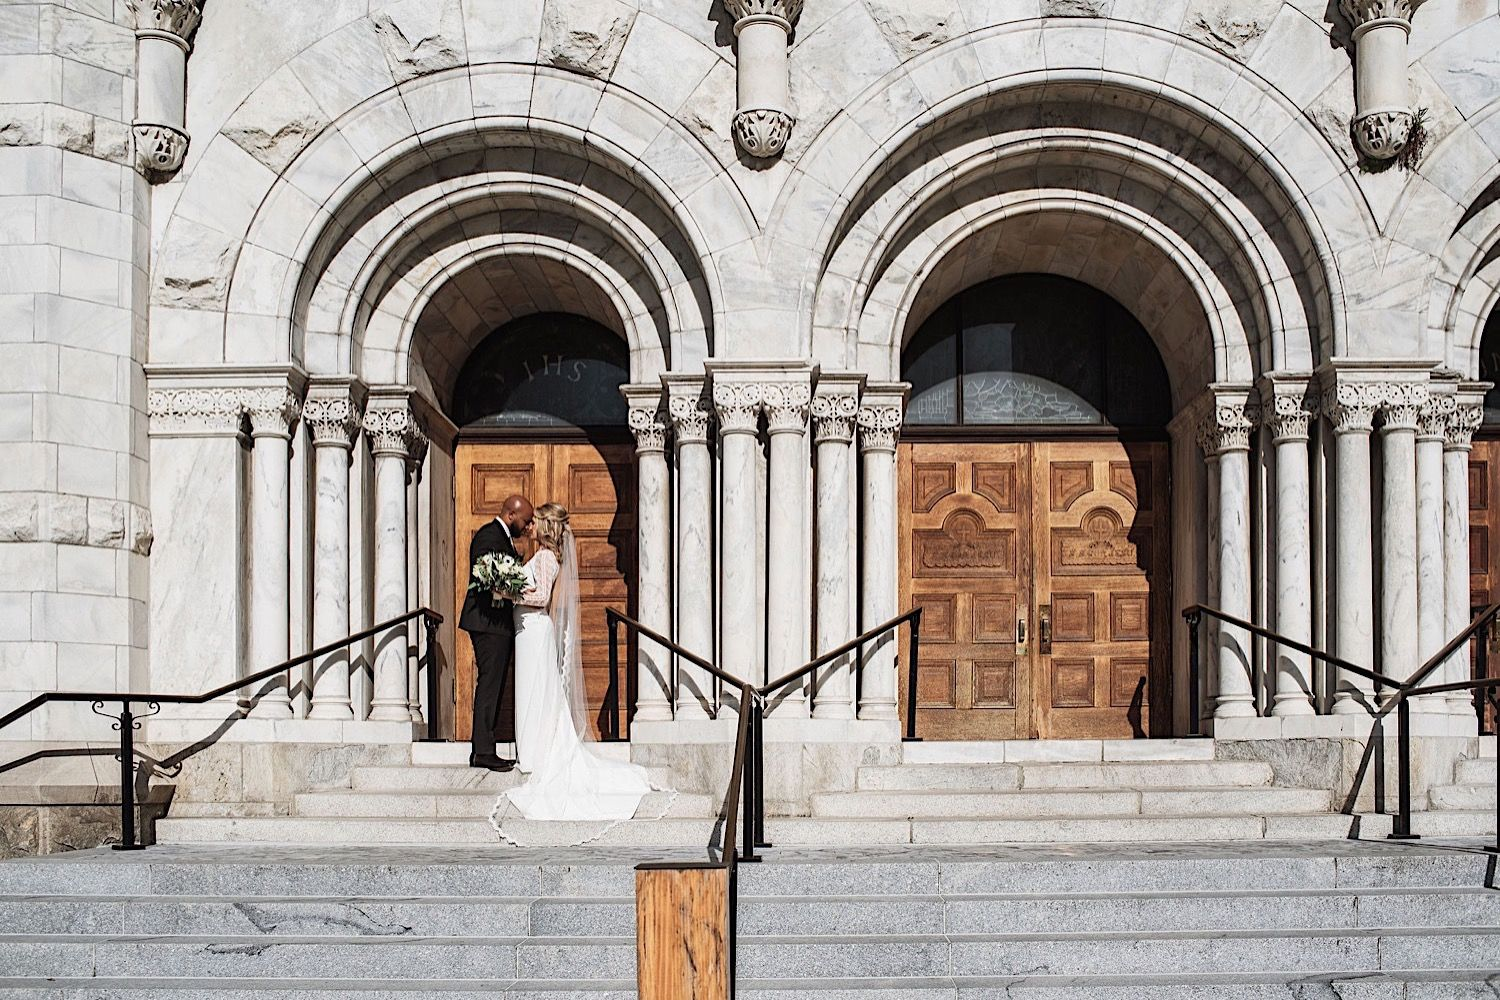 bride and groom standing in front of arched doorway on the steps of sacred heart church in downtown tampa